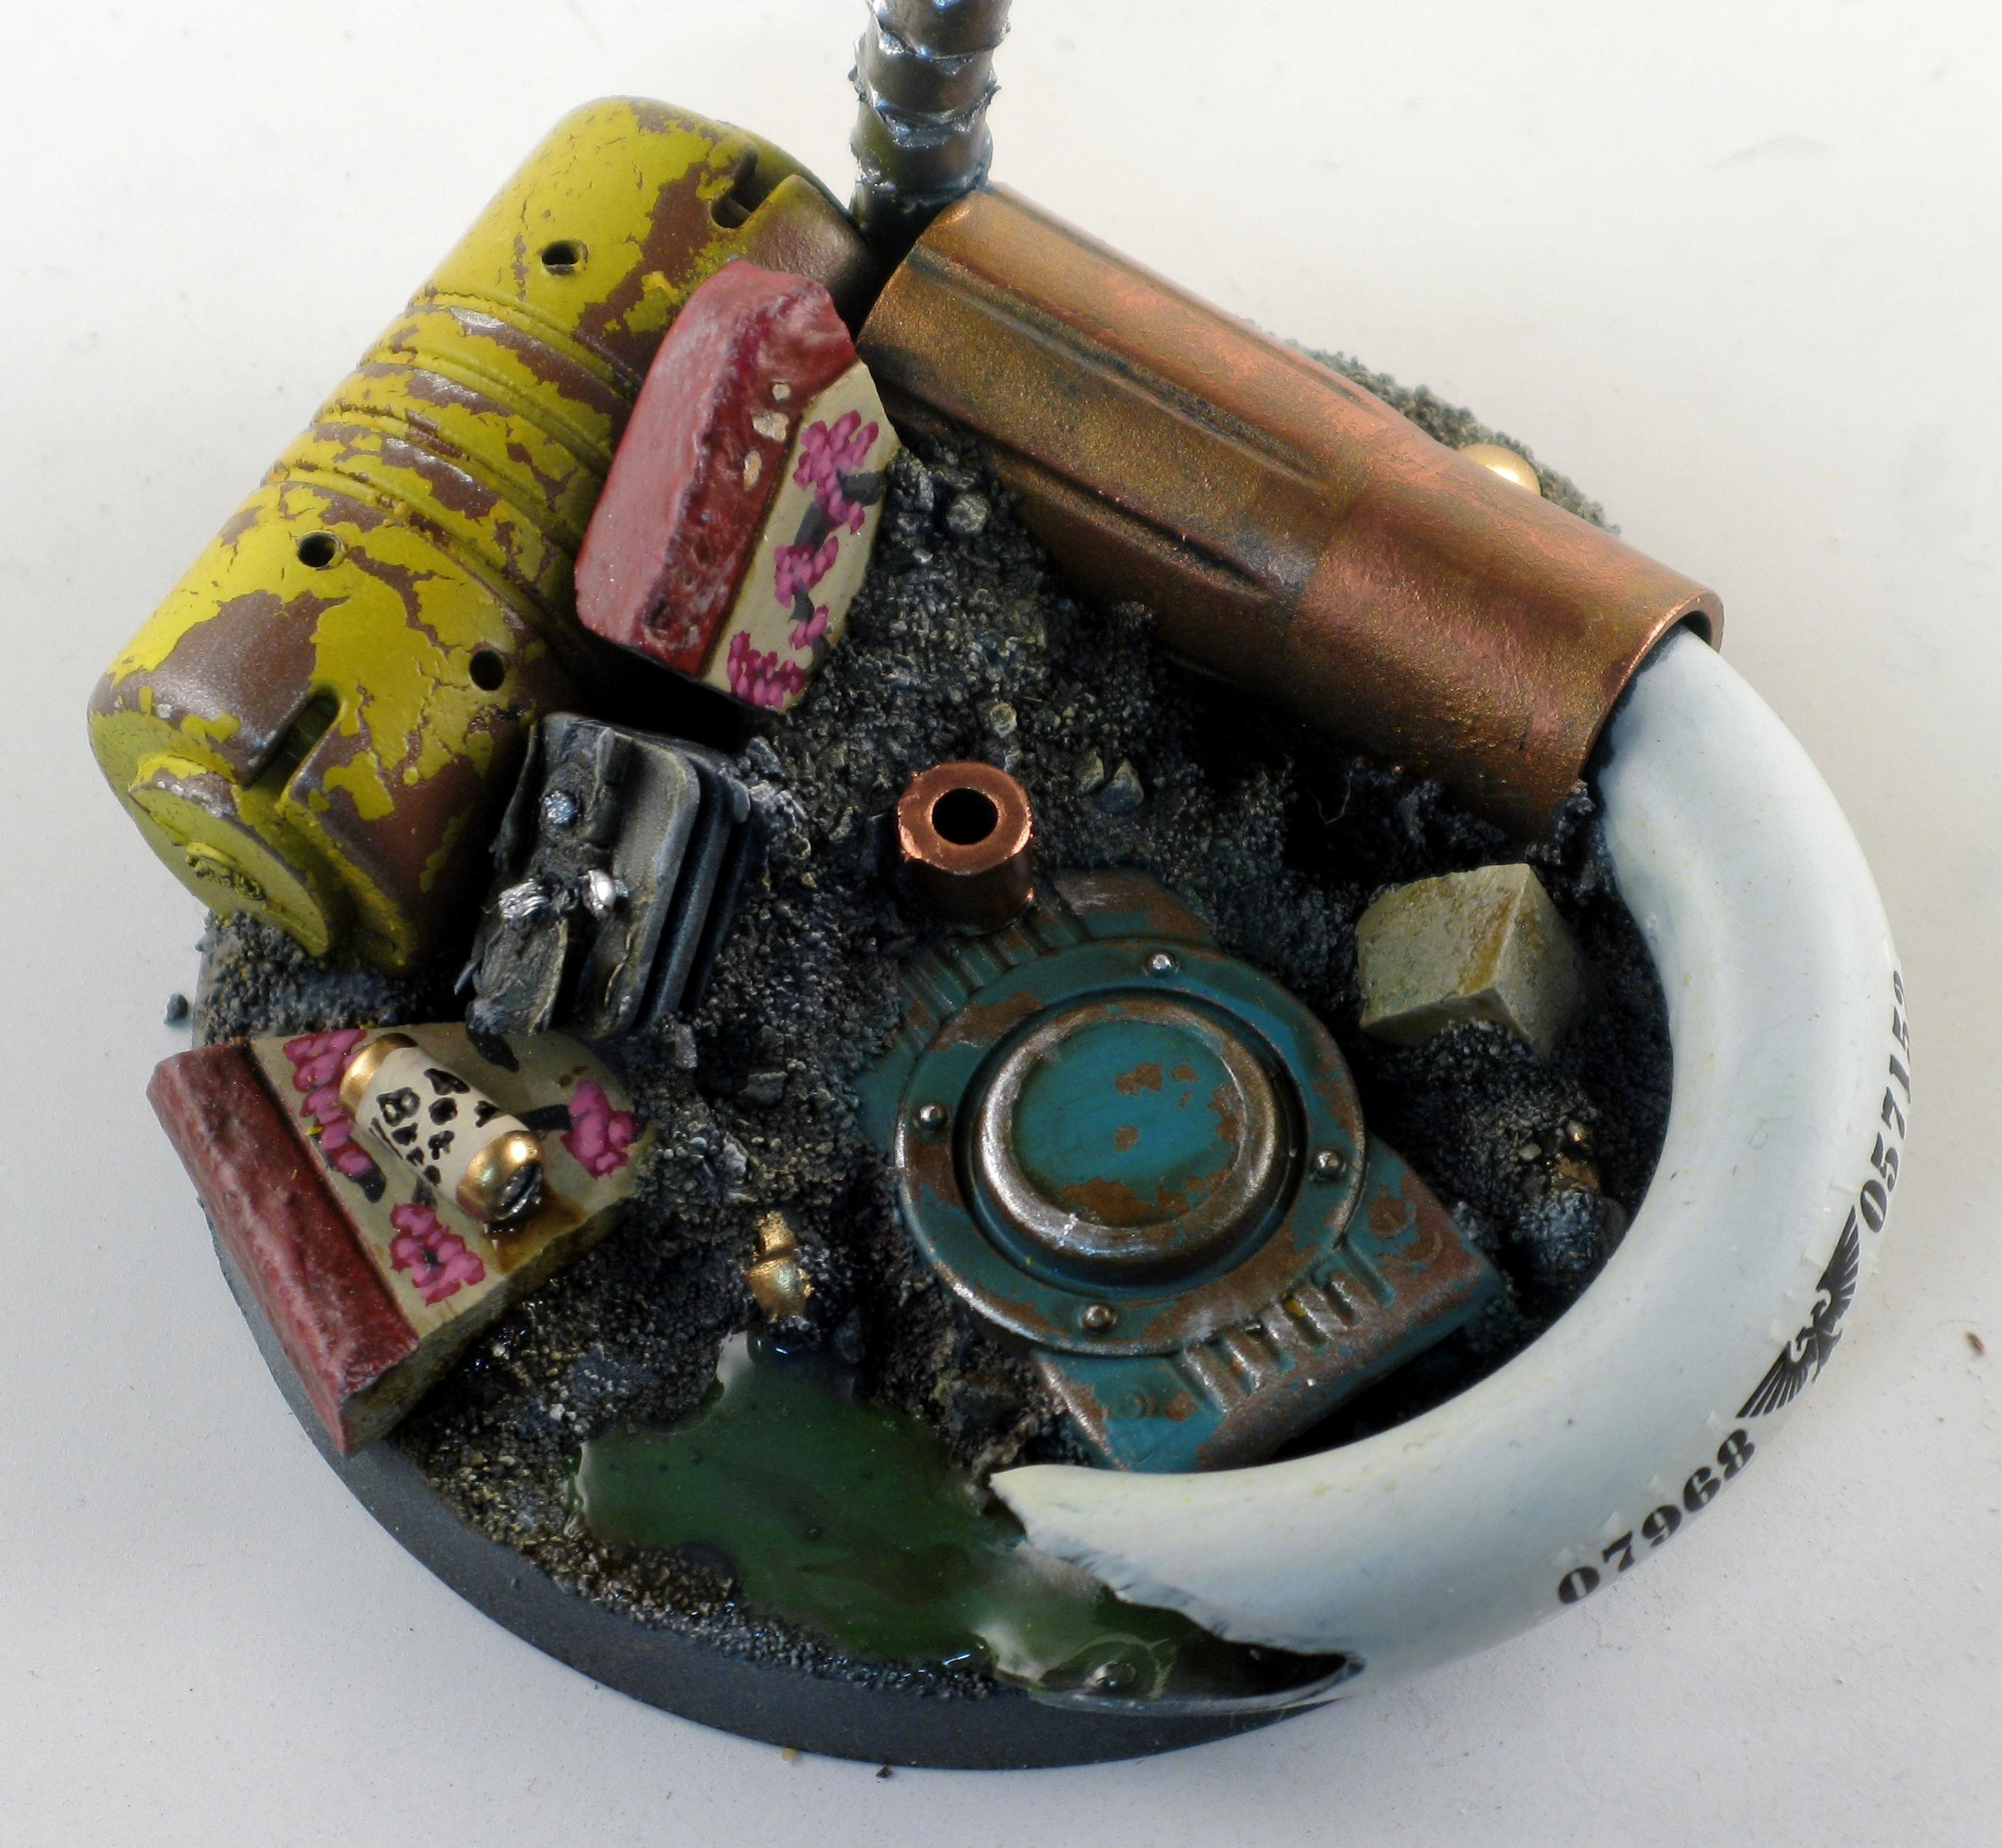 Contest, Junk, Weathered